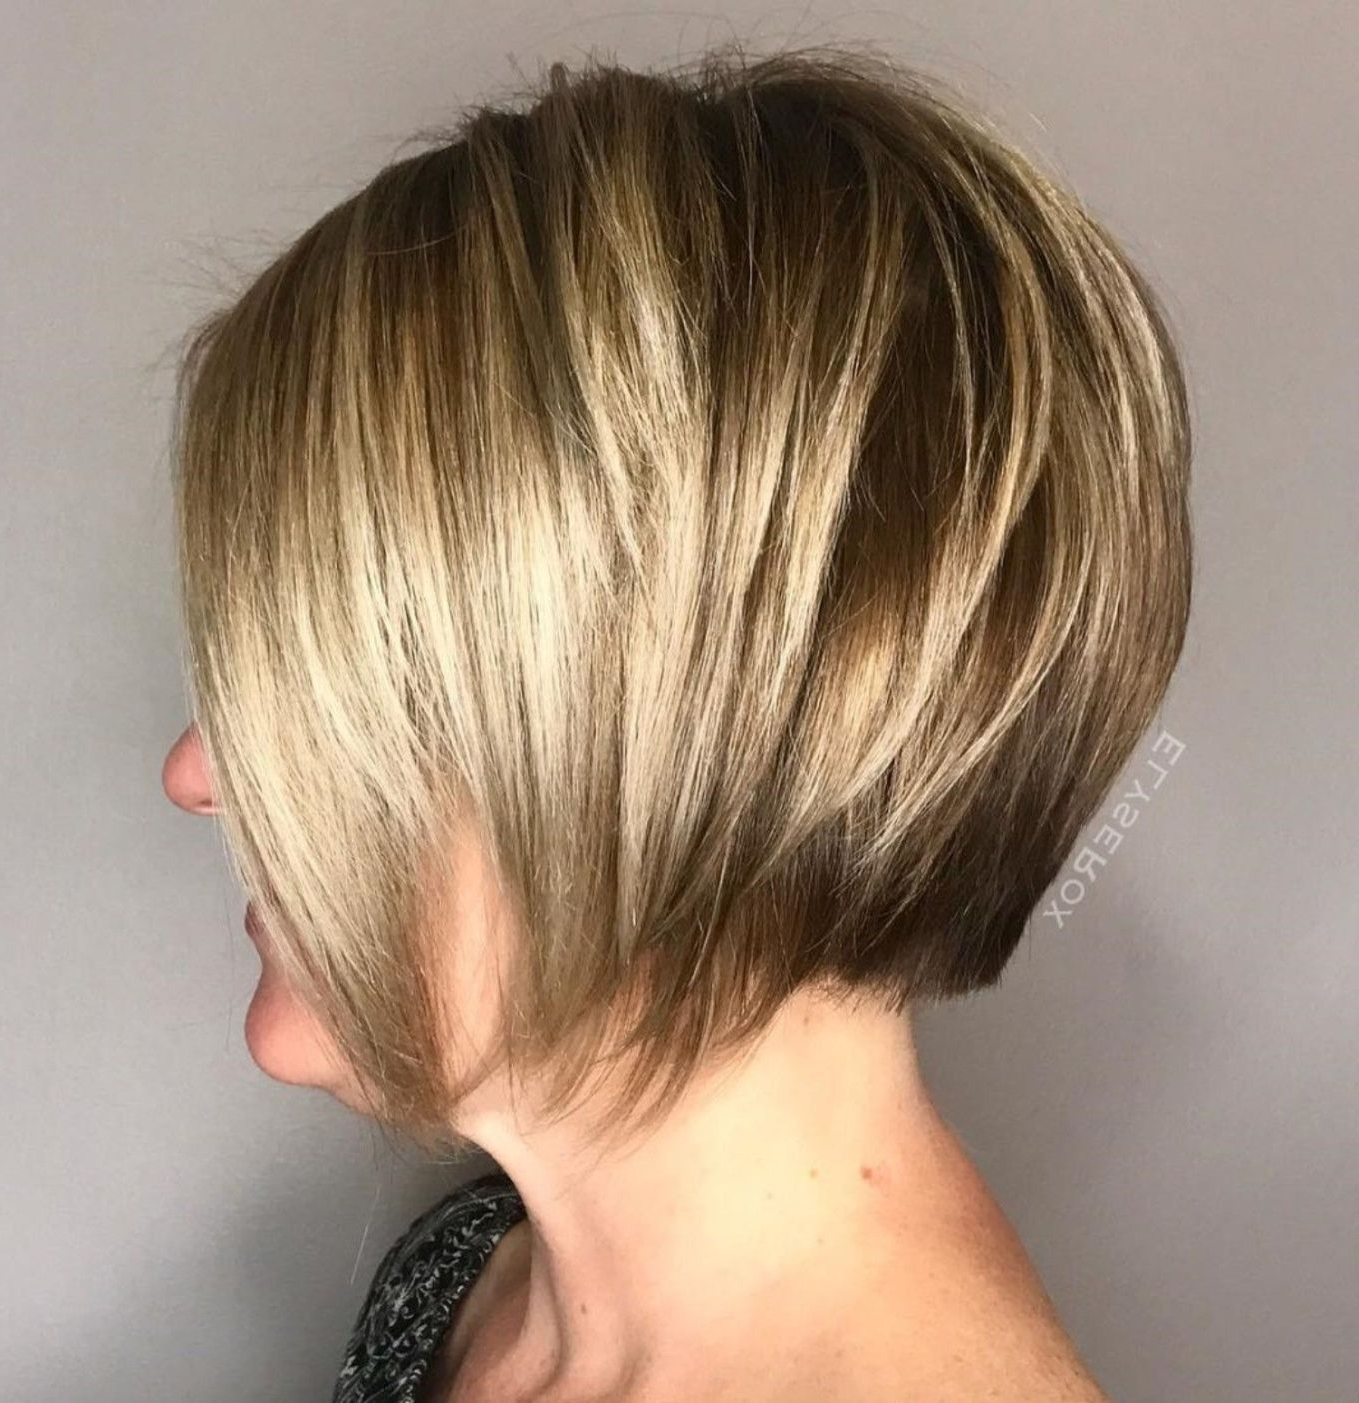 70 Cute And Easy To Style Short Layered Hairstyles (View 3 of 20)